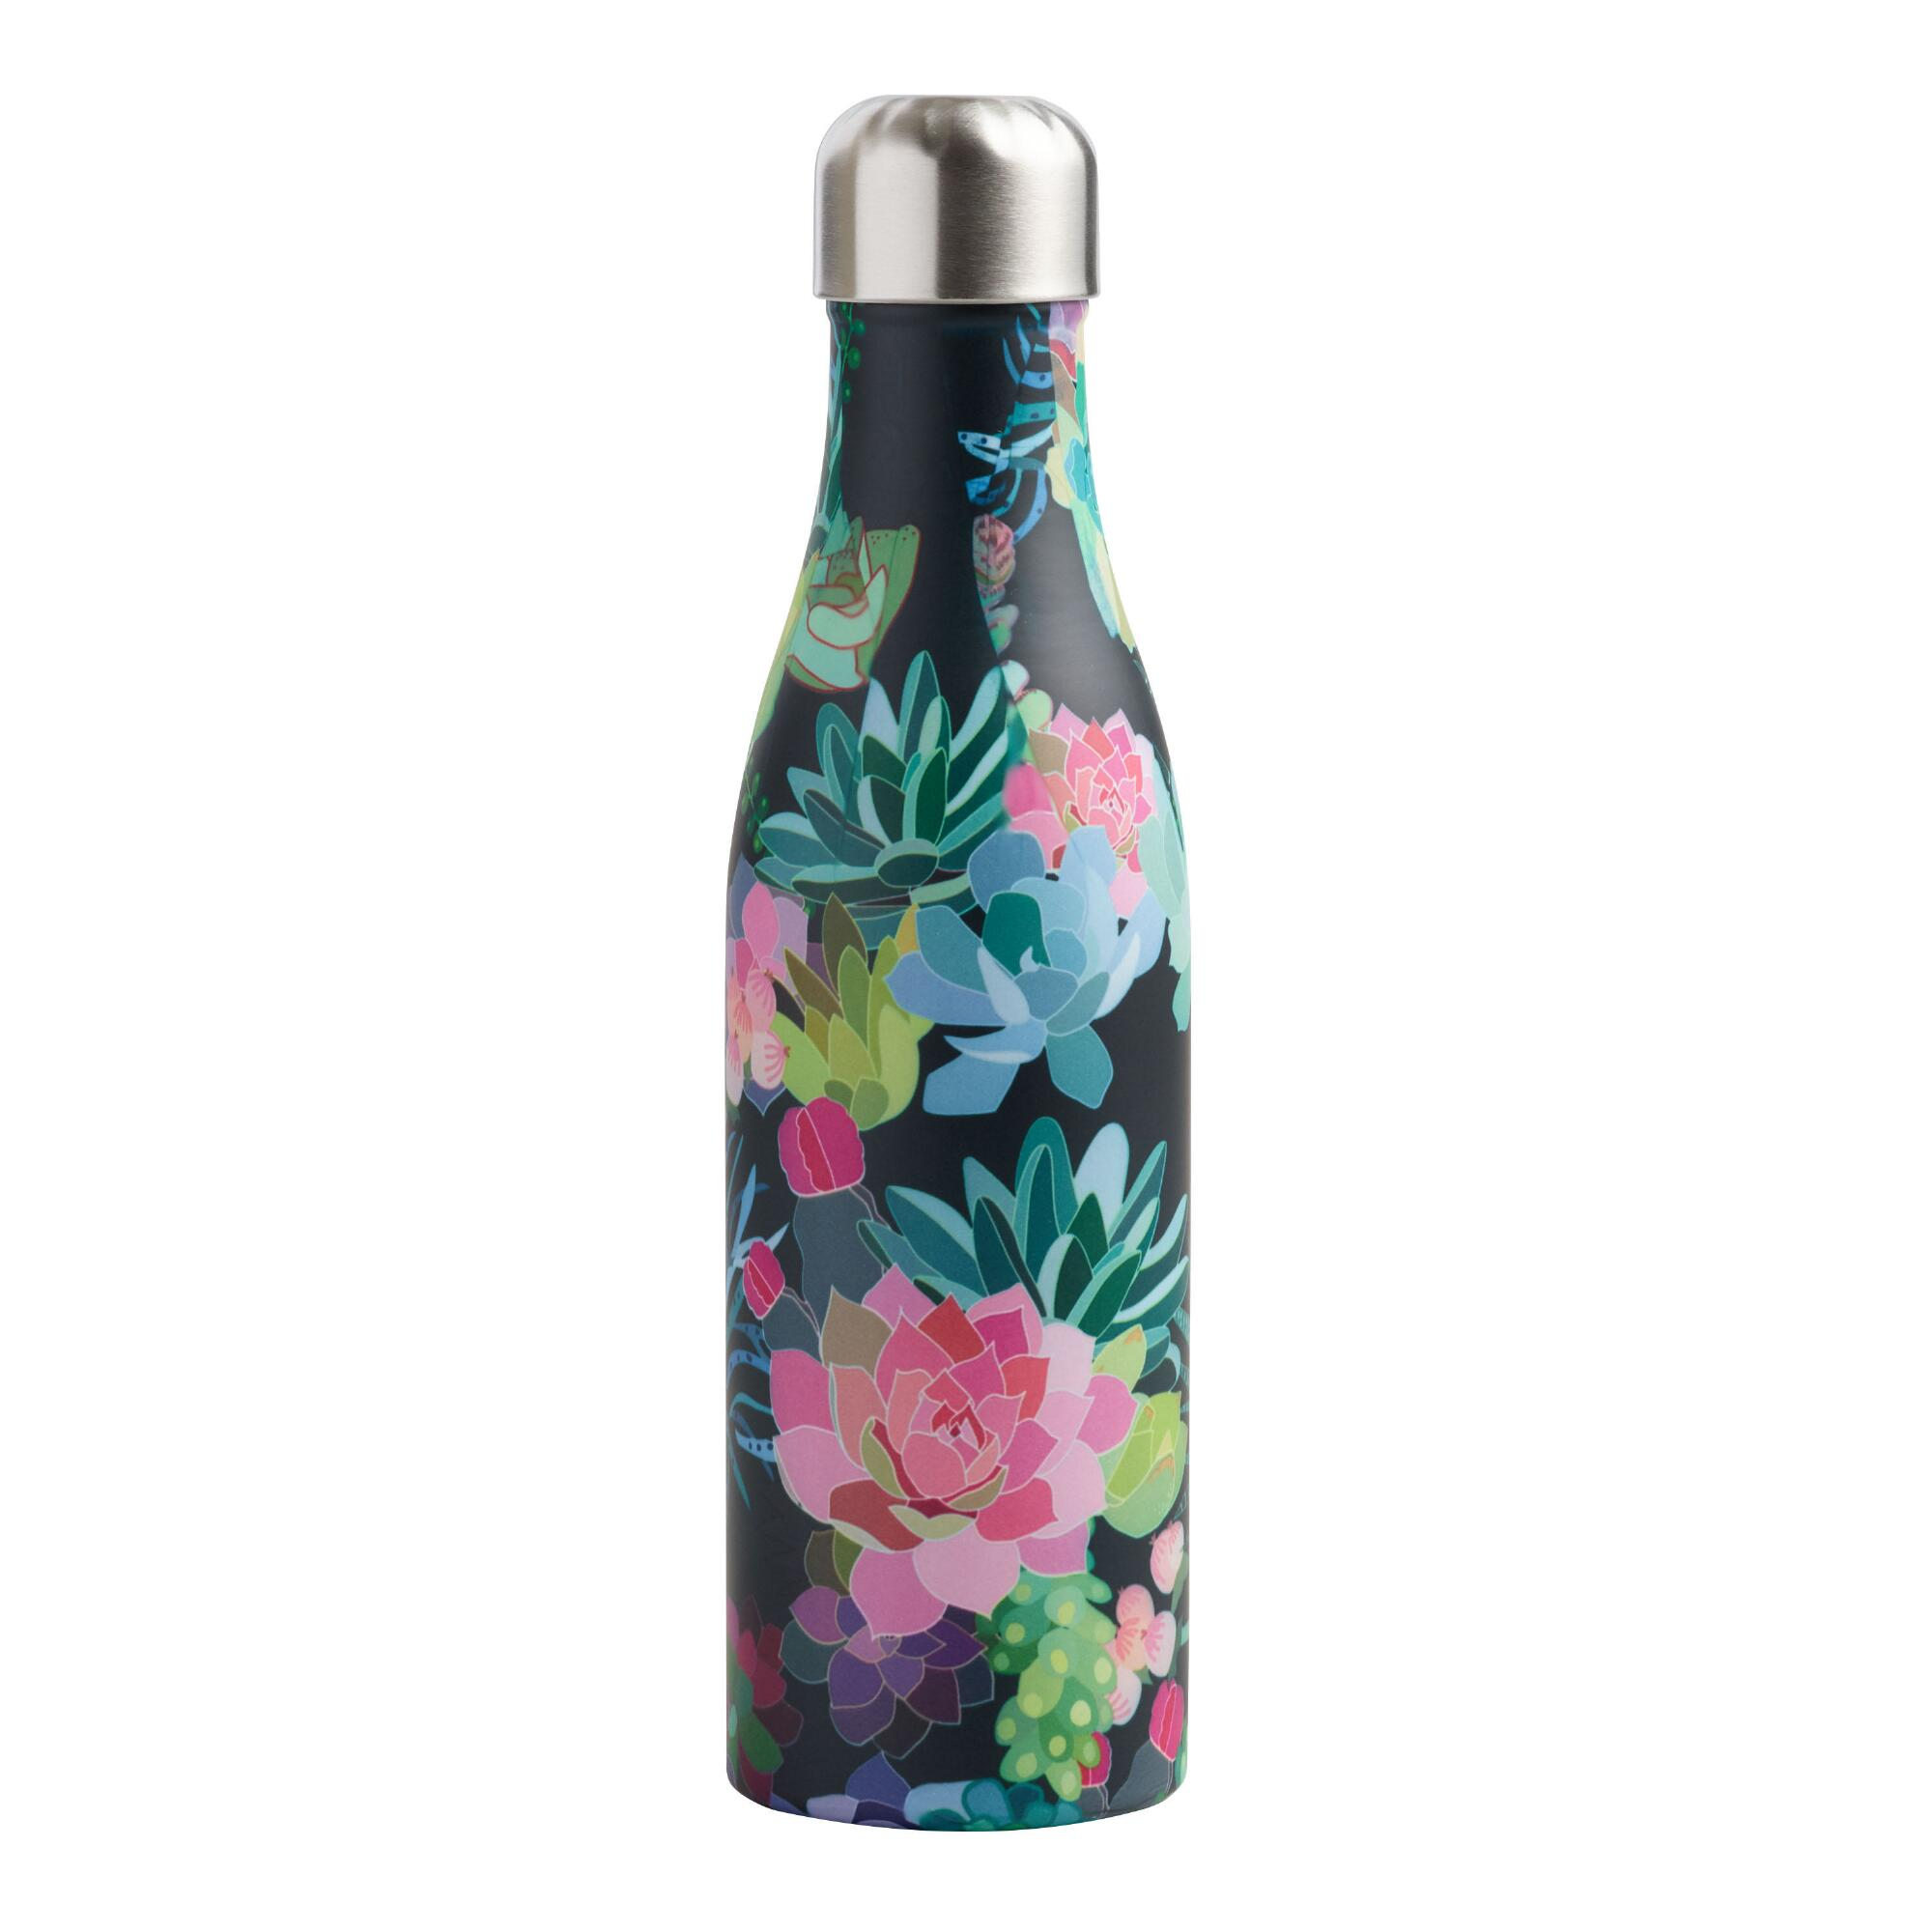 Medium Succulents Insulated Stainless Steel Water Bottle by World Market